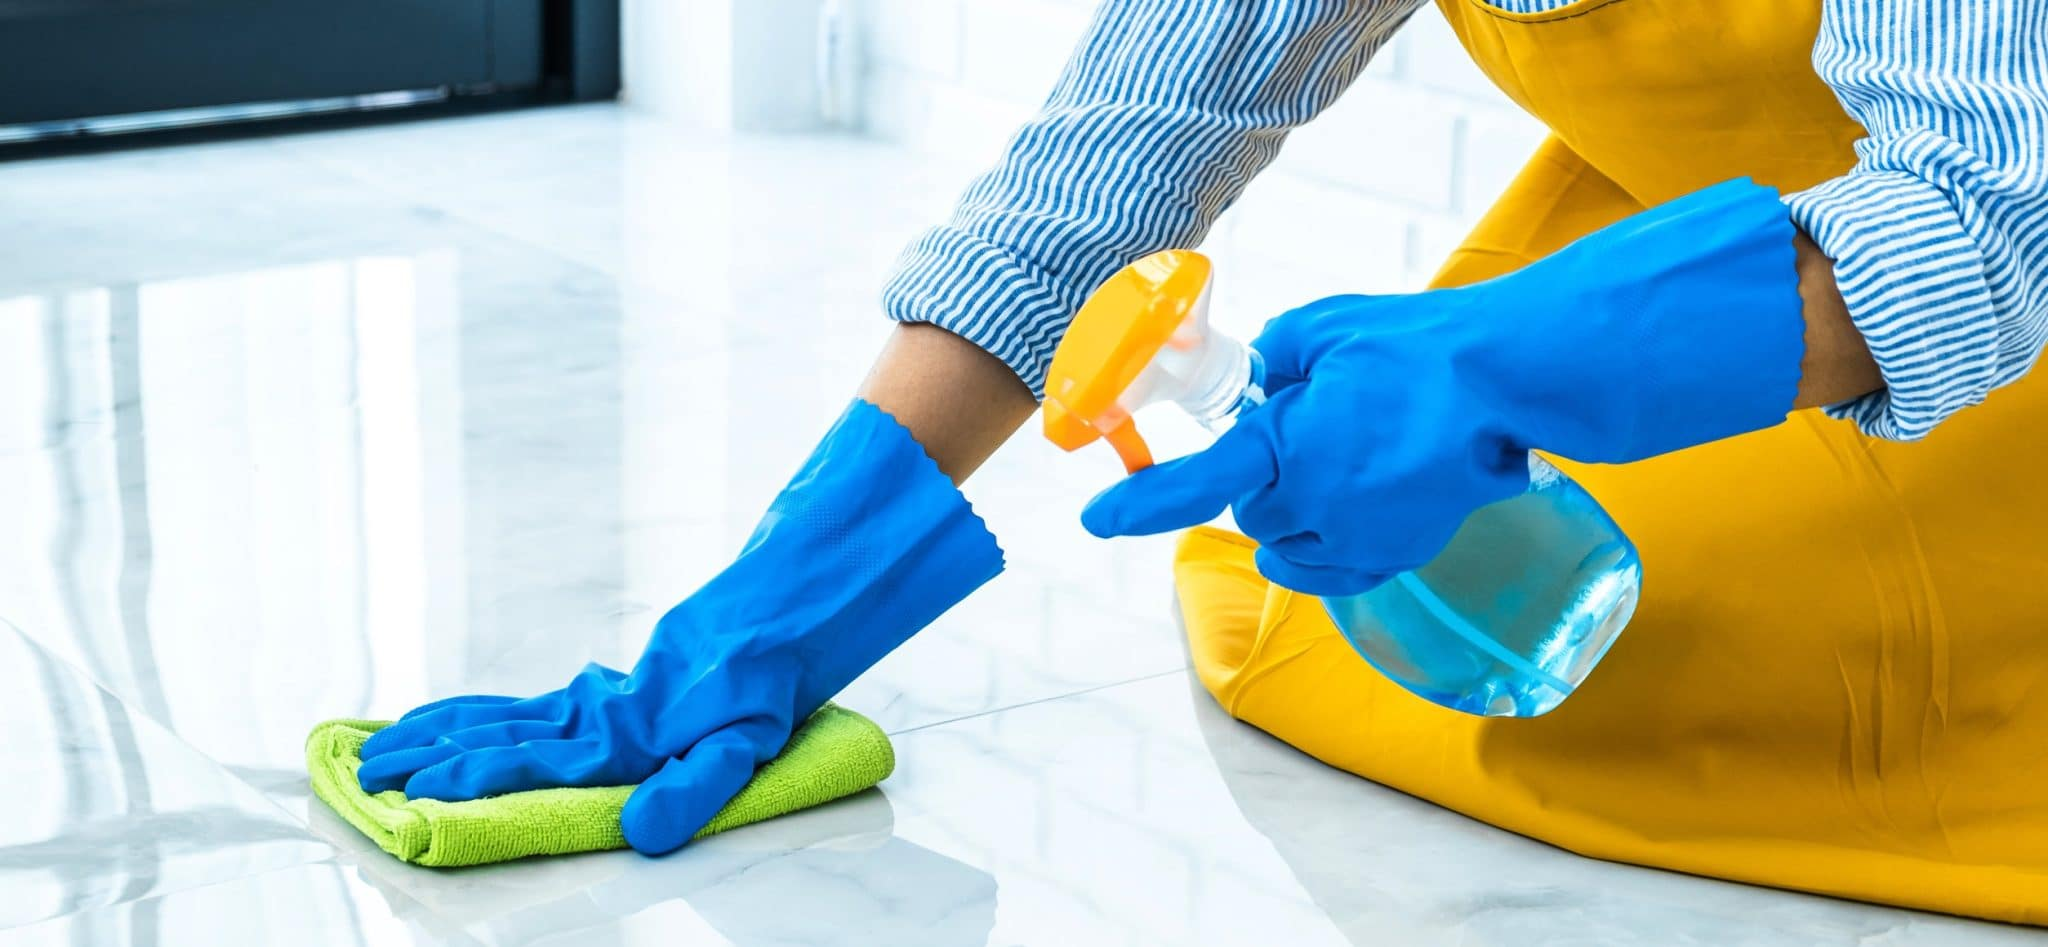 Woman cleaning a tile floor